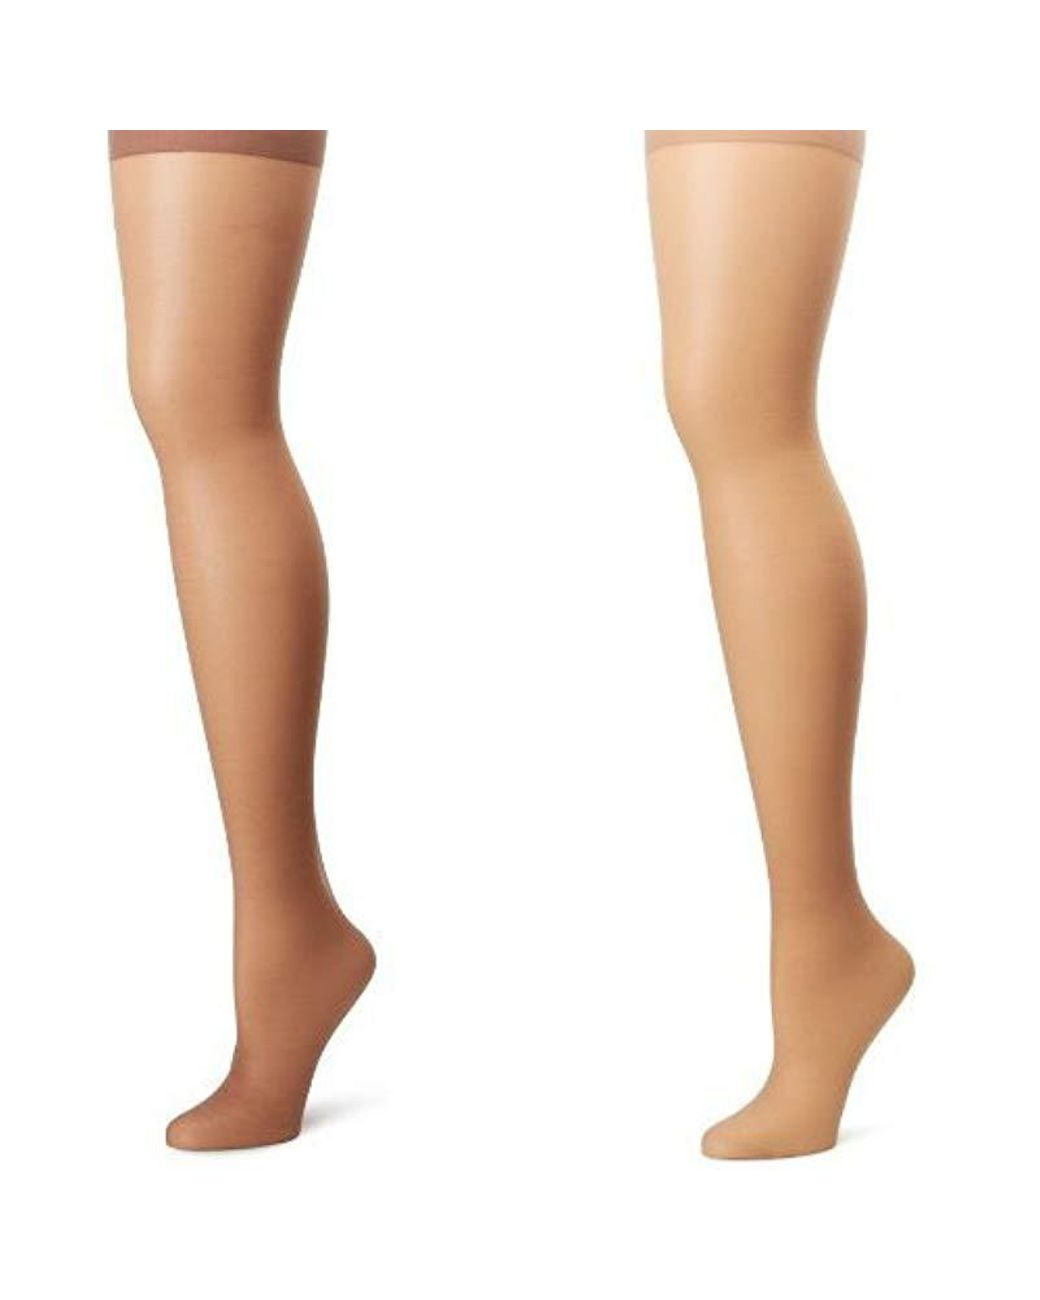 88894dde8e1 Lyst - Hanes Silk Reflections Plus-size Control Top Enhanced Toe Pantyhose  in White